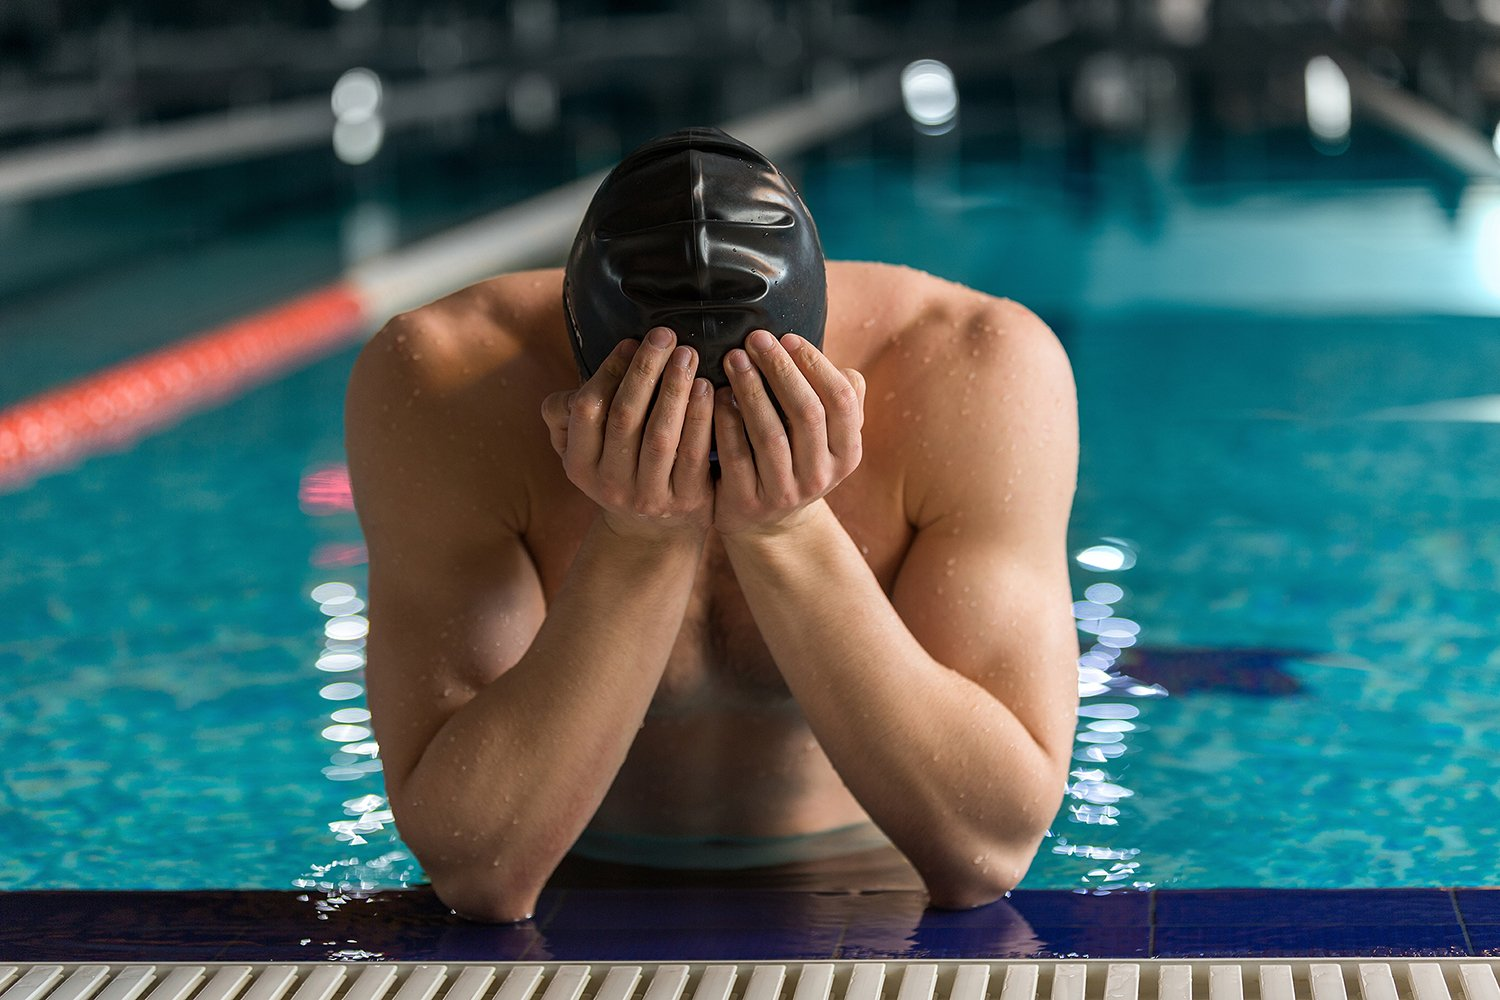 Male Swimmer with head in hands at the edge of the pool could use help from the winning edge to cope with a loss